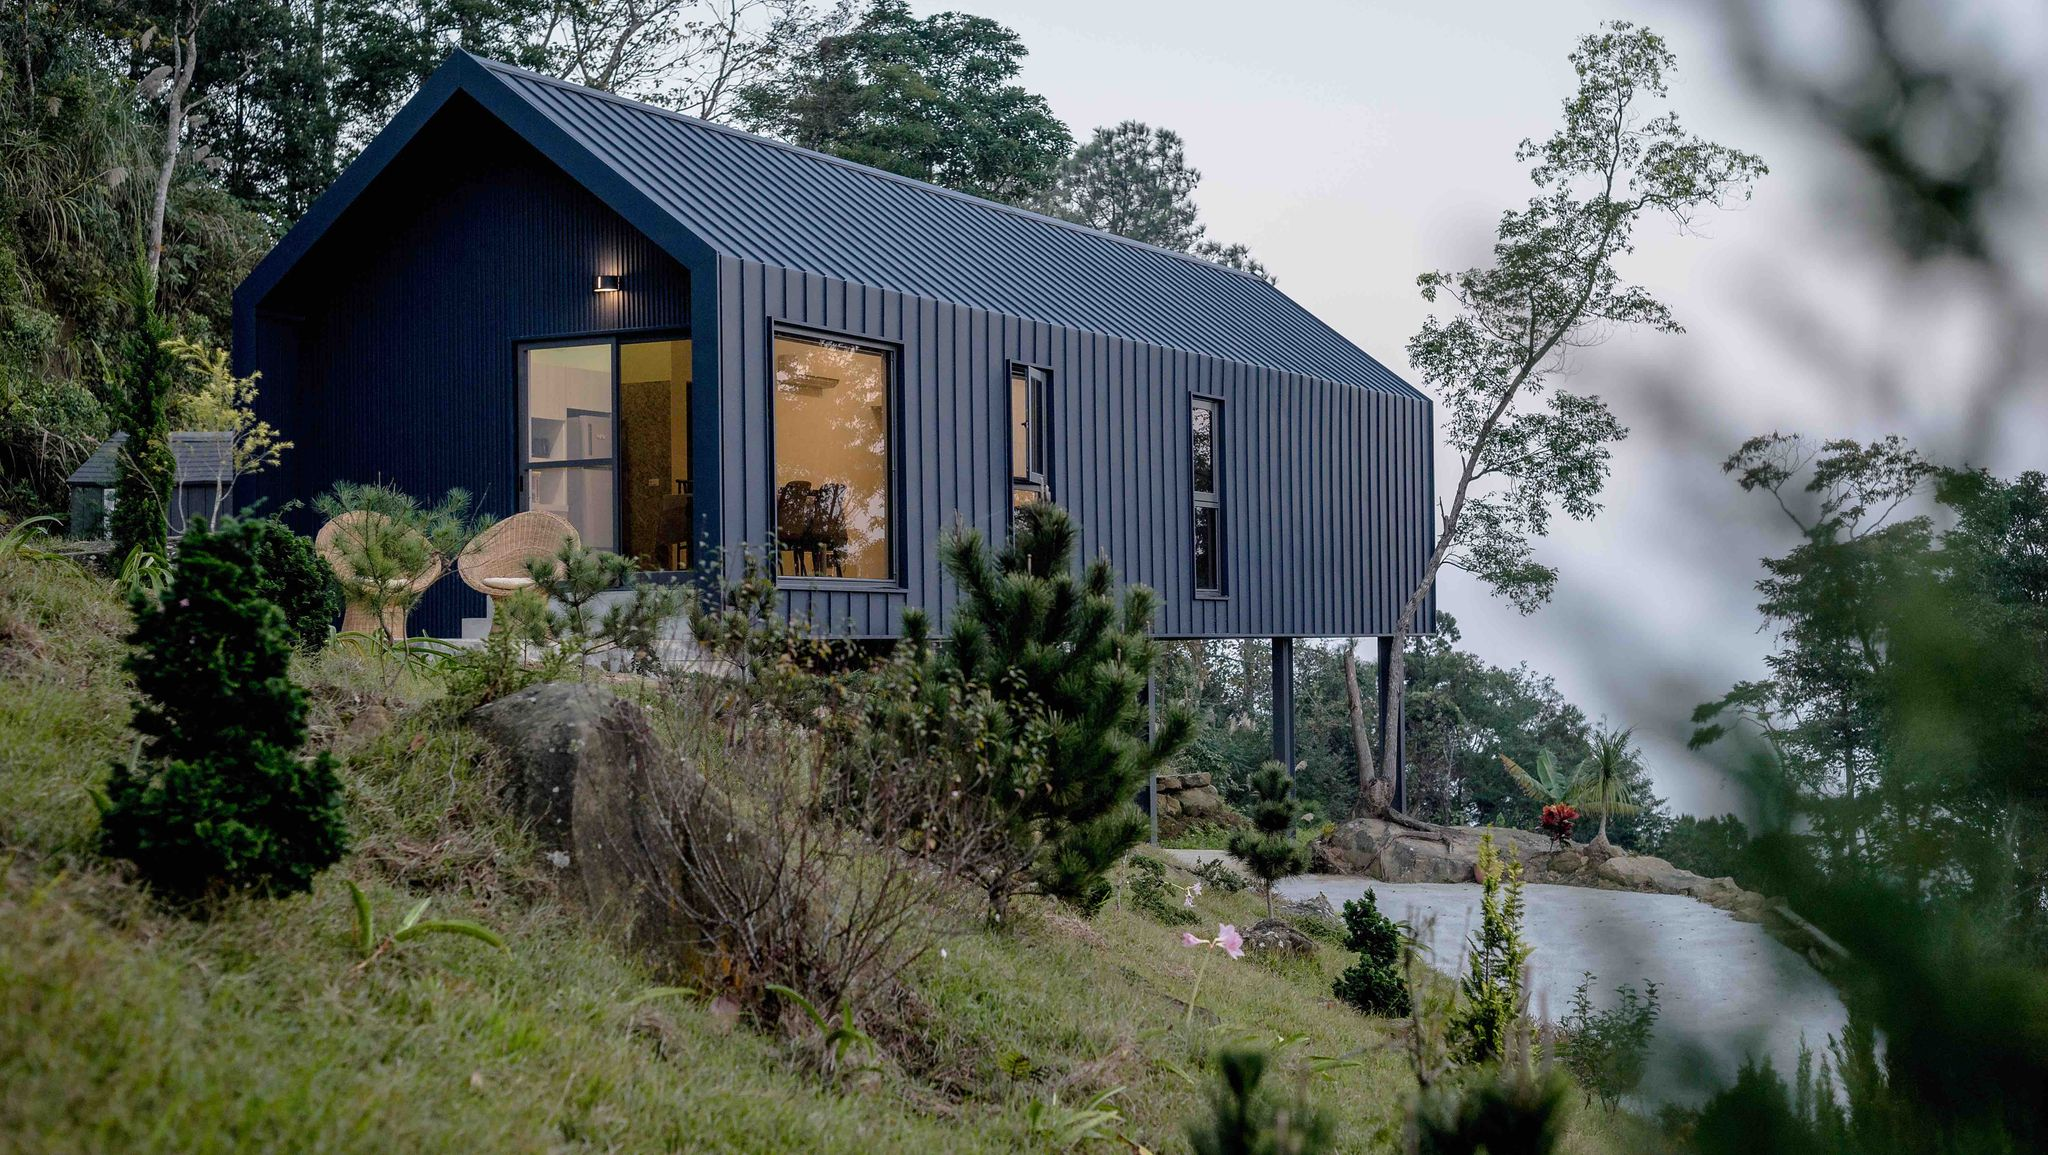 A Low-Budget Prefab House Adapts to Conquer Impossible Terrain